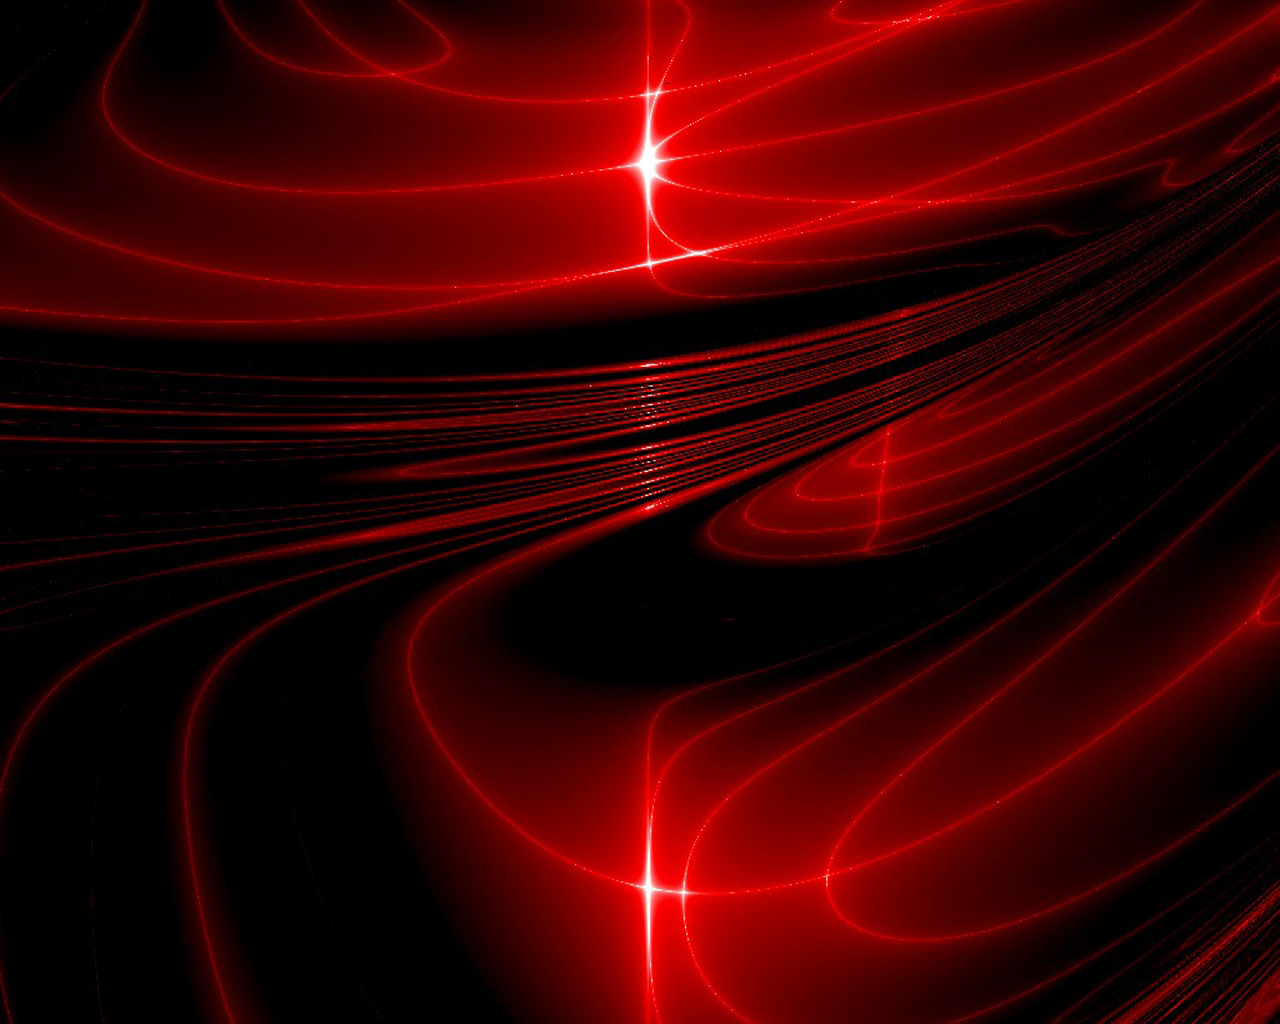 Wallpaper By Author Unknown Red Wallpaper Pages 1 2 Wallpaper